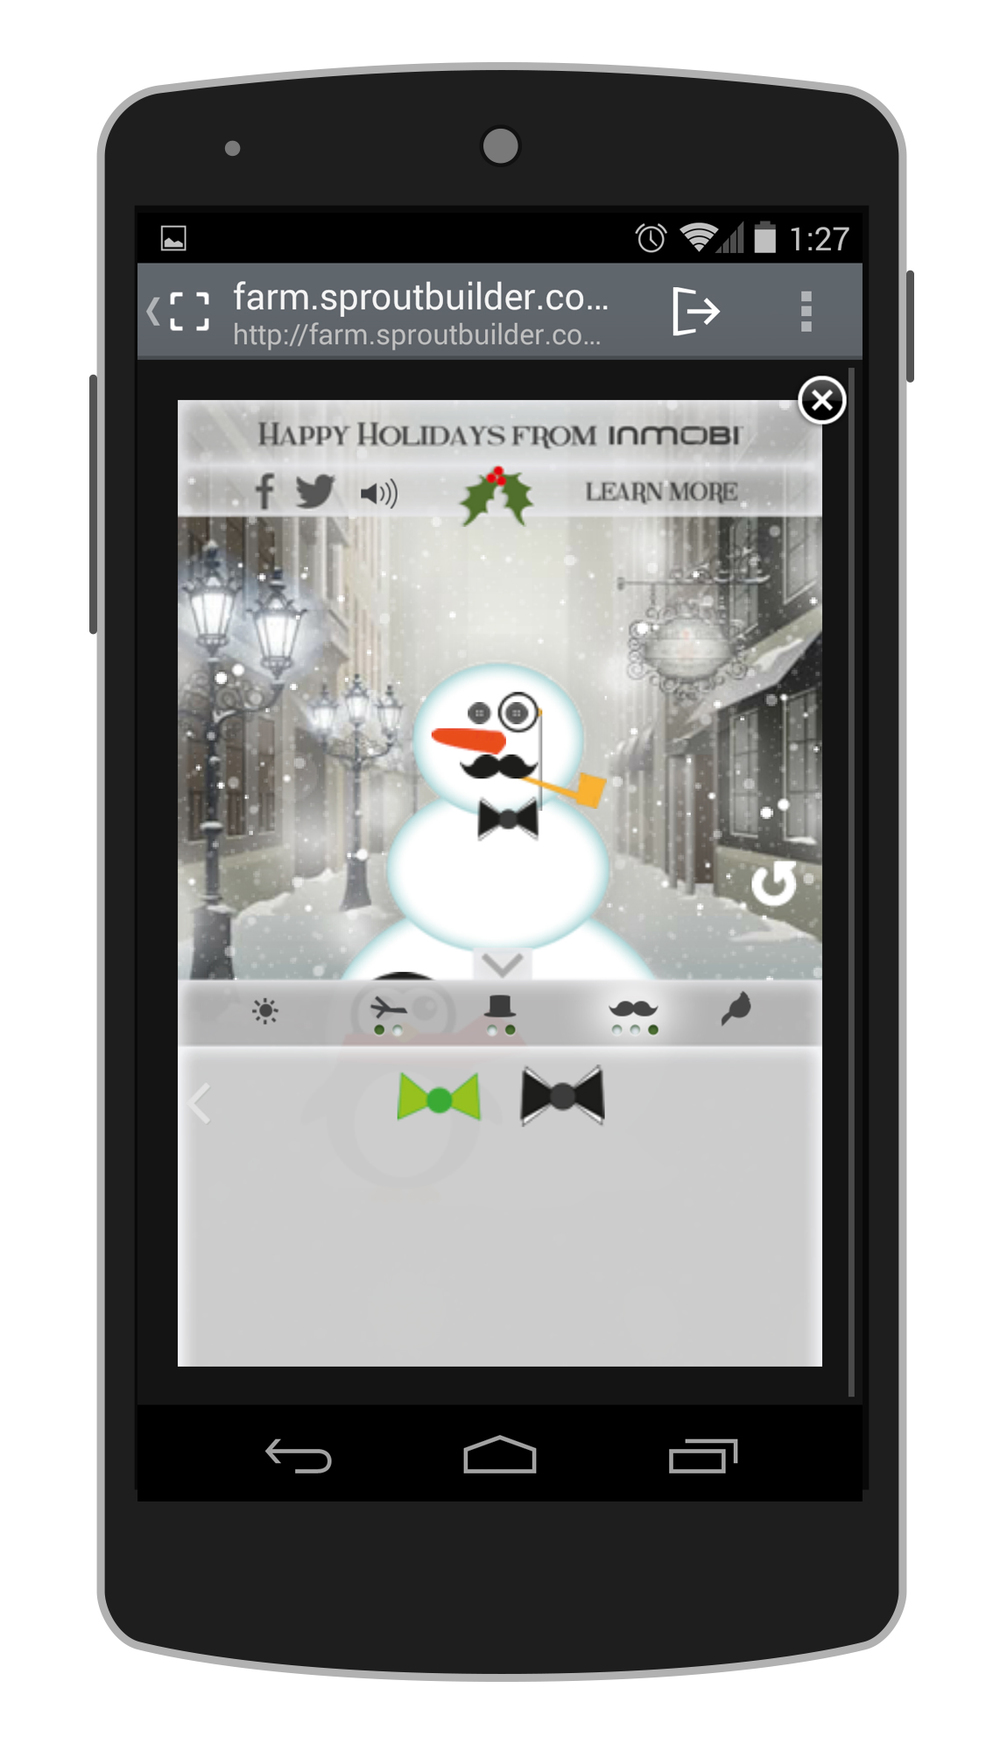 InMobi Christmas Card - Build A Snowman